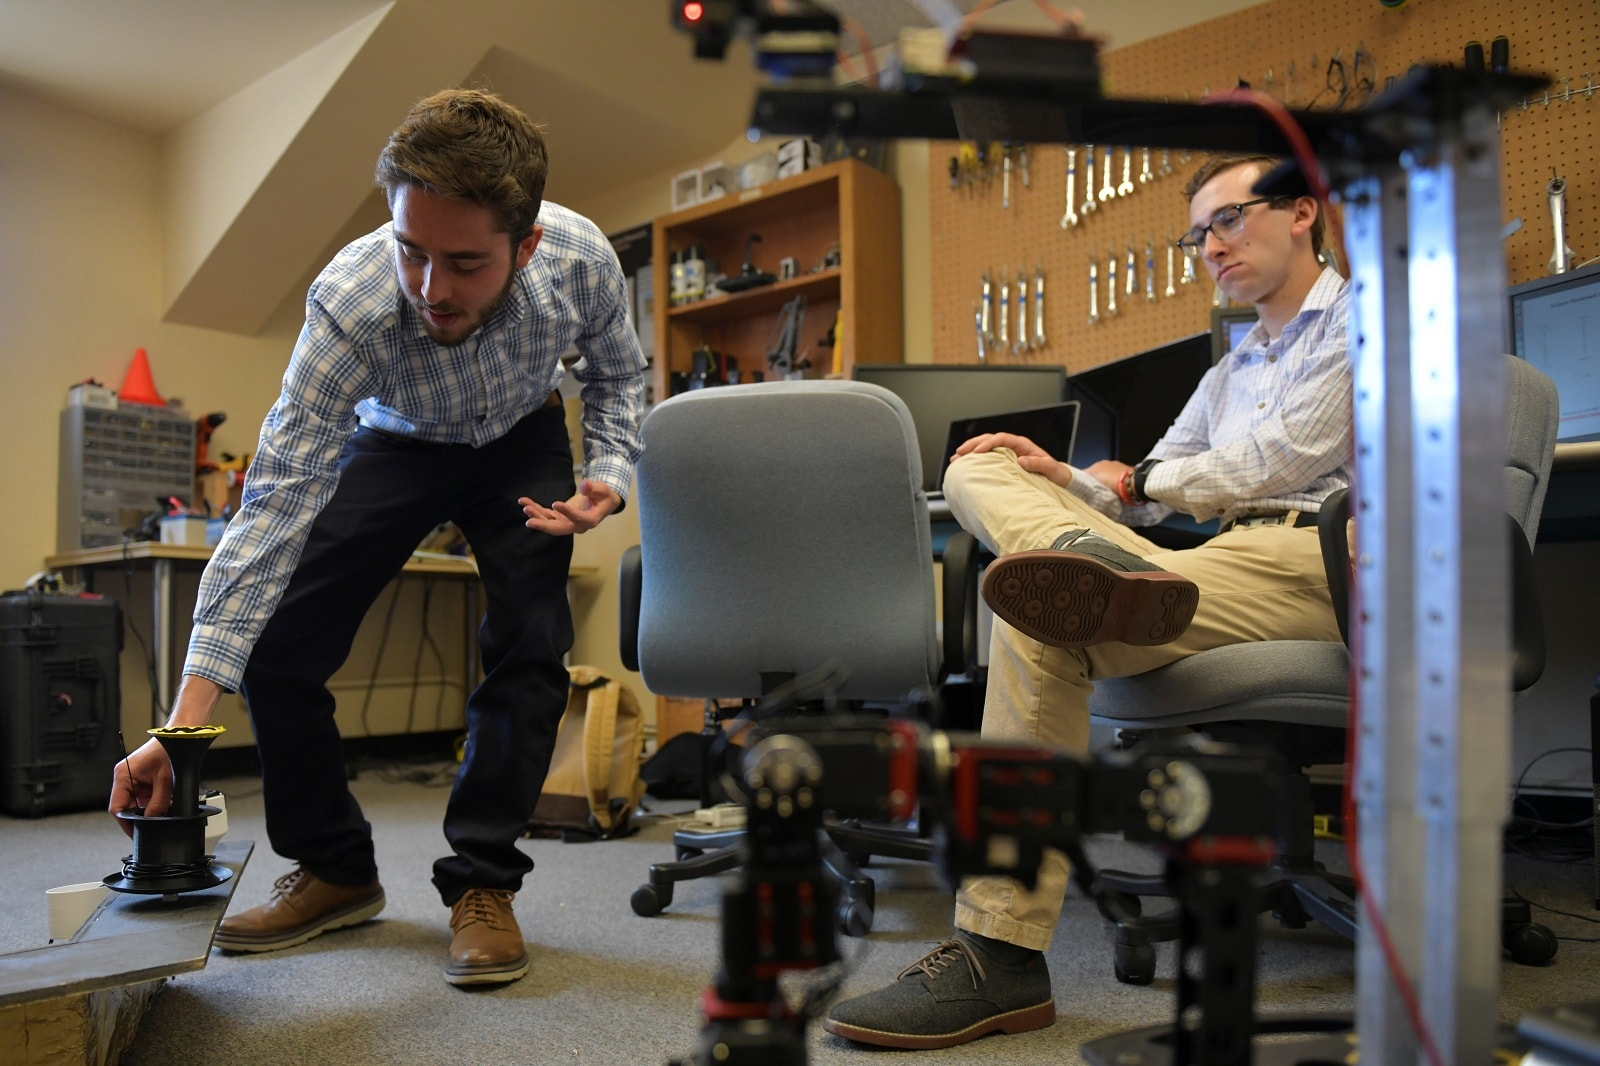 University of Colorado Boulder graduate researcher Ben Mellinkoff (L) sets up an experiment for Armstrong, an assembly robot that utilizes low latency telerobotics that would allow close to real-time video monitoring of operations on the far side of the moon, at a lab in Boulder, Colorado, US, June 24, 2019. REUTERS/Michael Ciaglo